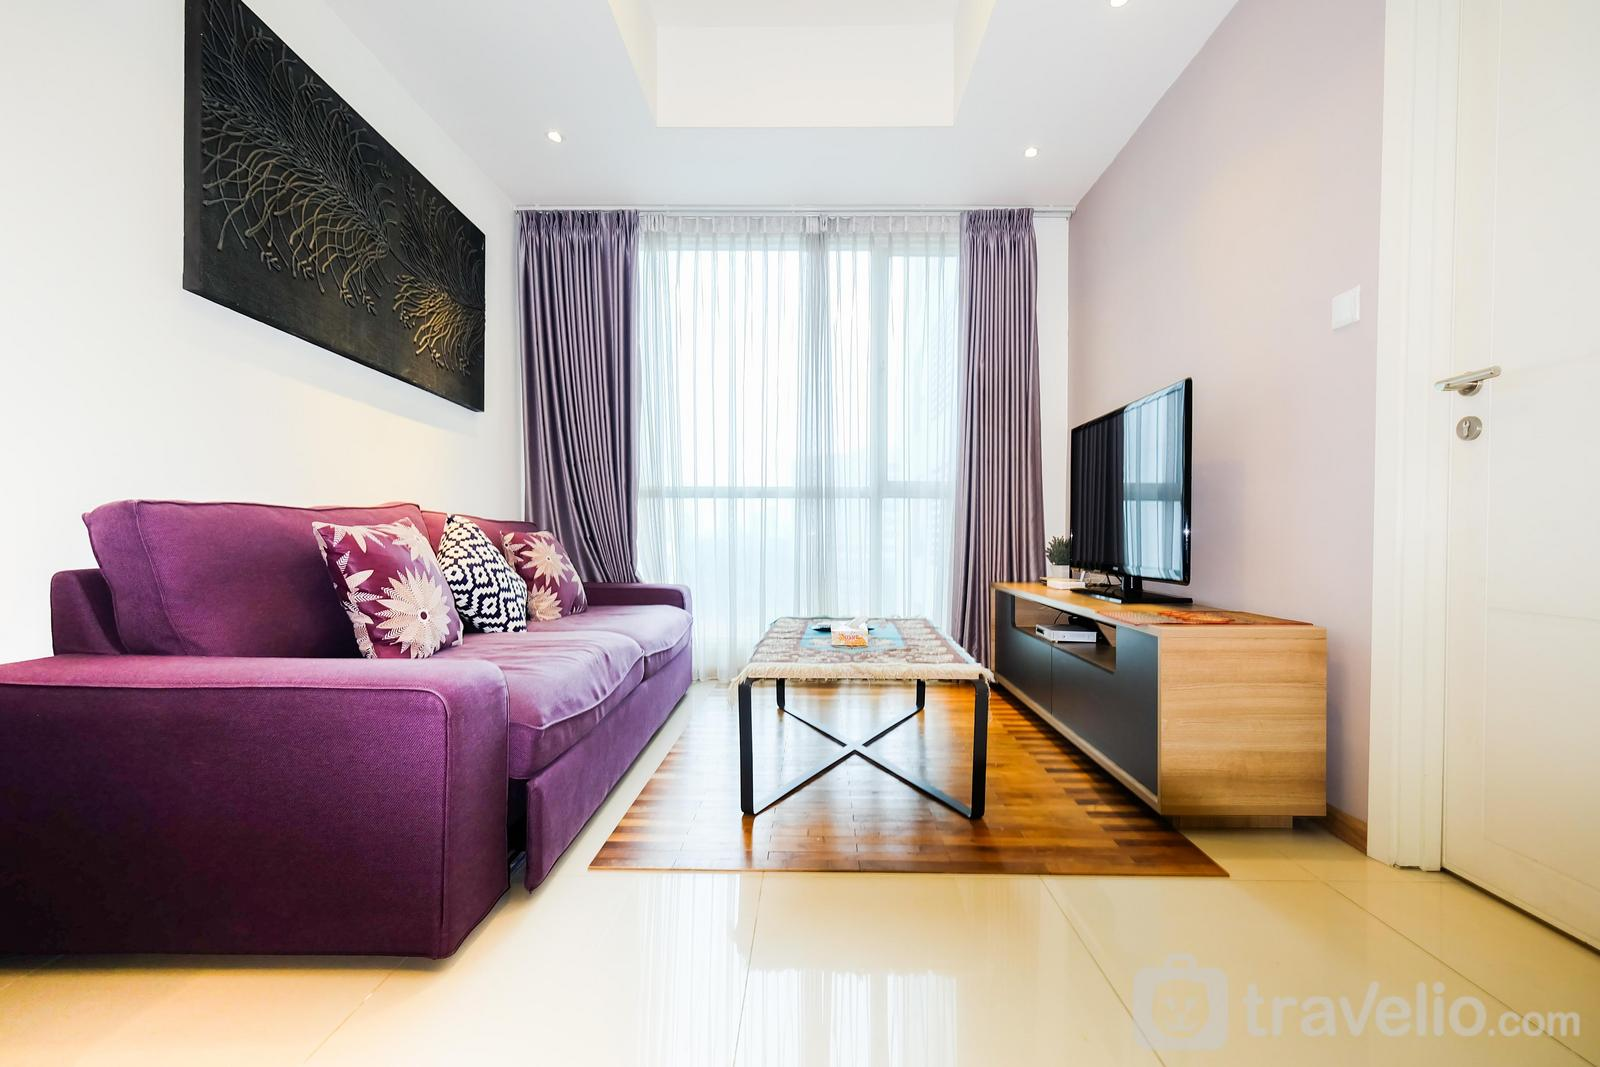 Casa Grande Residence - 1BR Apartment with Big Sofa Bed at Casa Grande Residence By Travelio